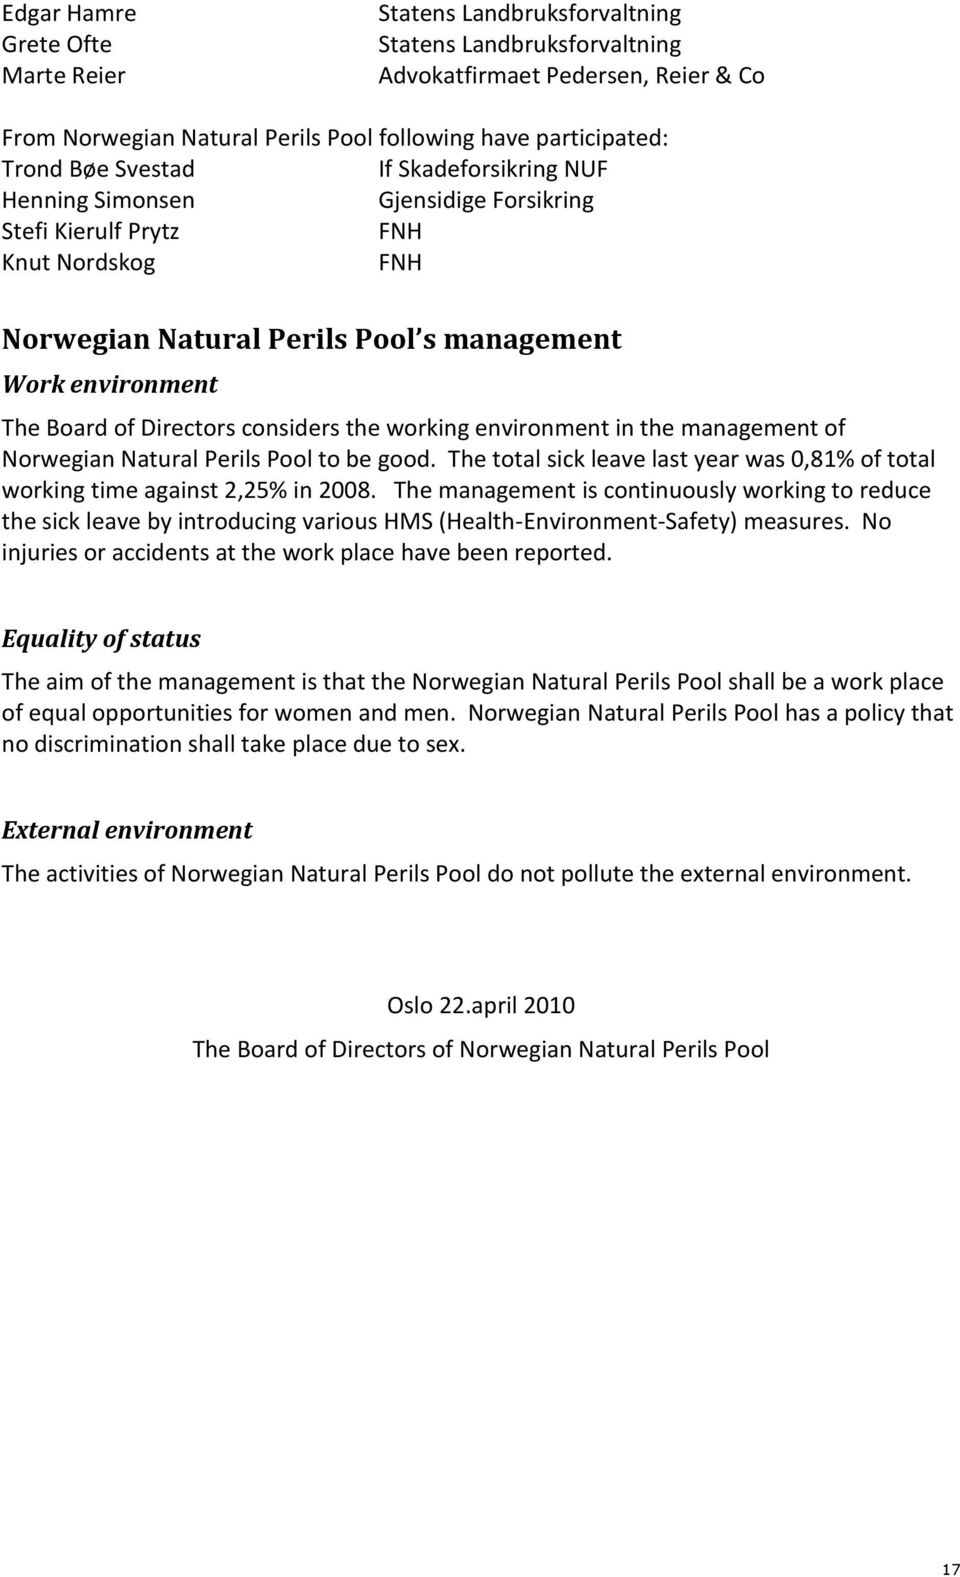 management of Norwegian Natural Perils Pool to be good. The total sick leave last year was 0,81% of total working time against 2,25% in 2008.